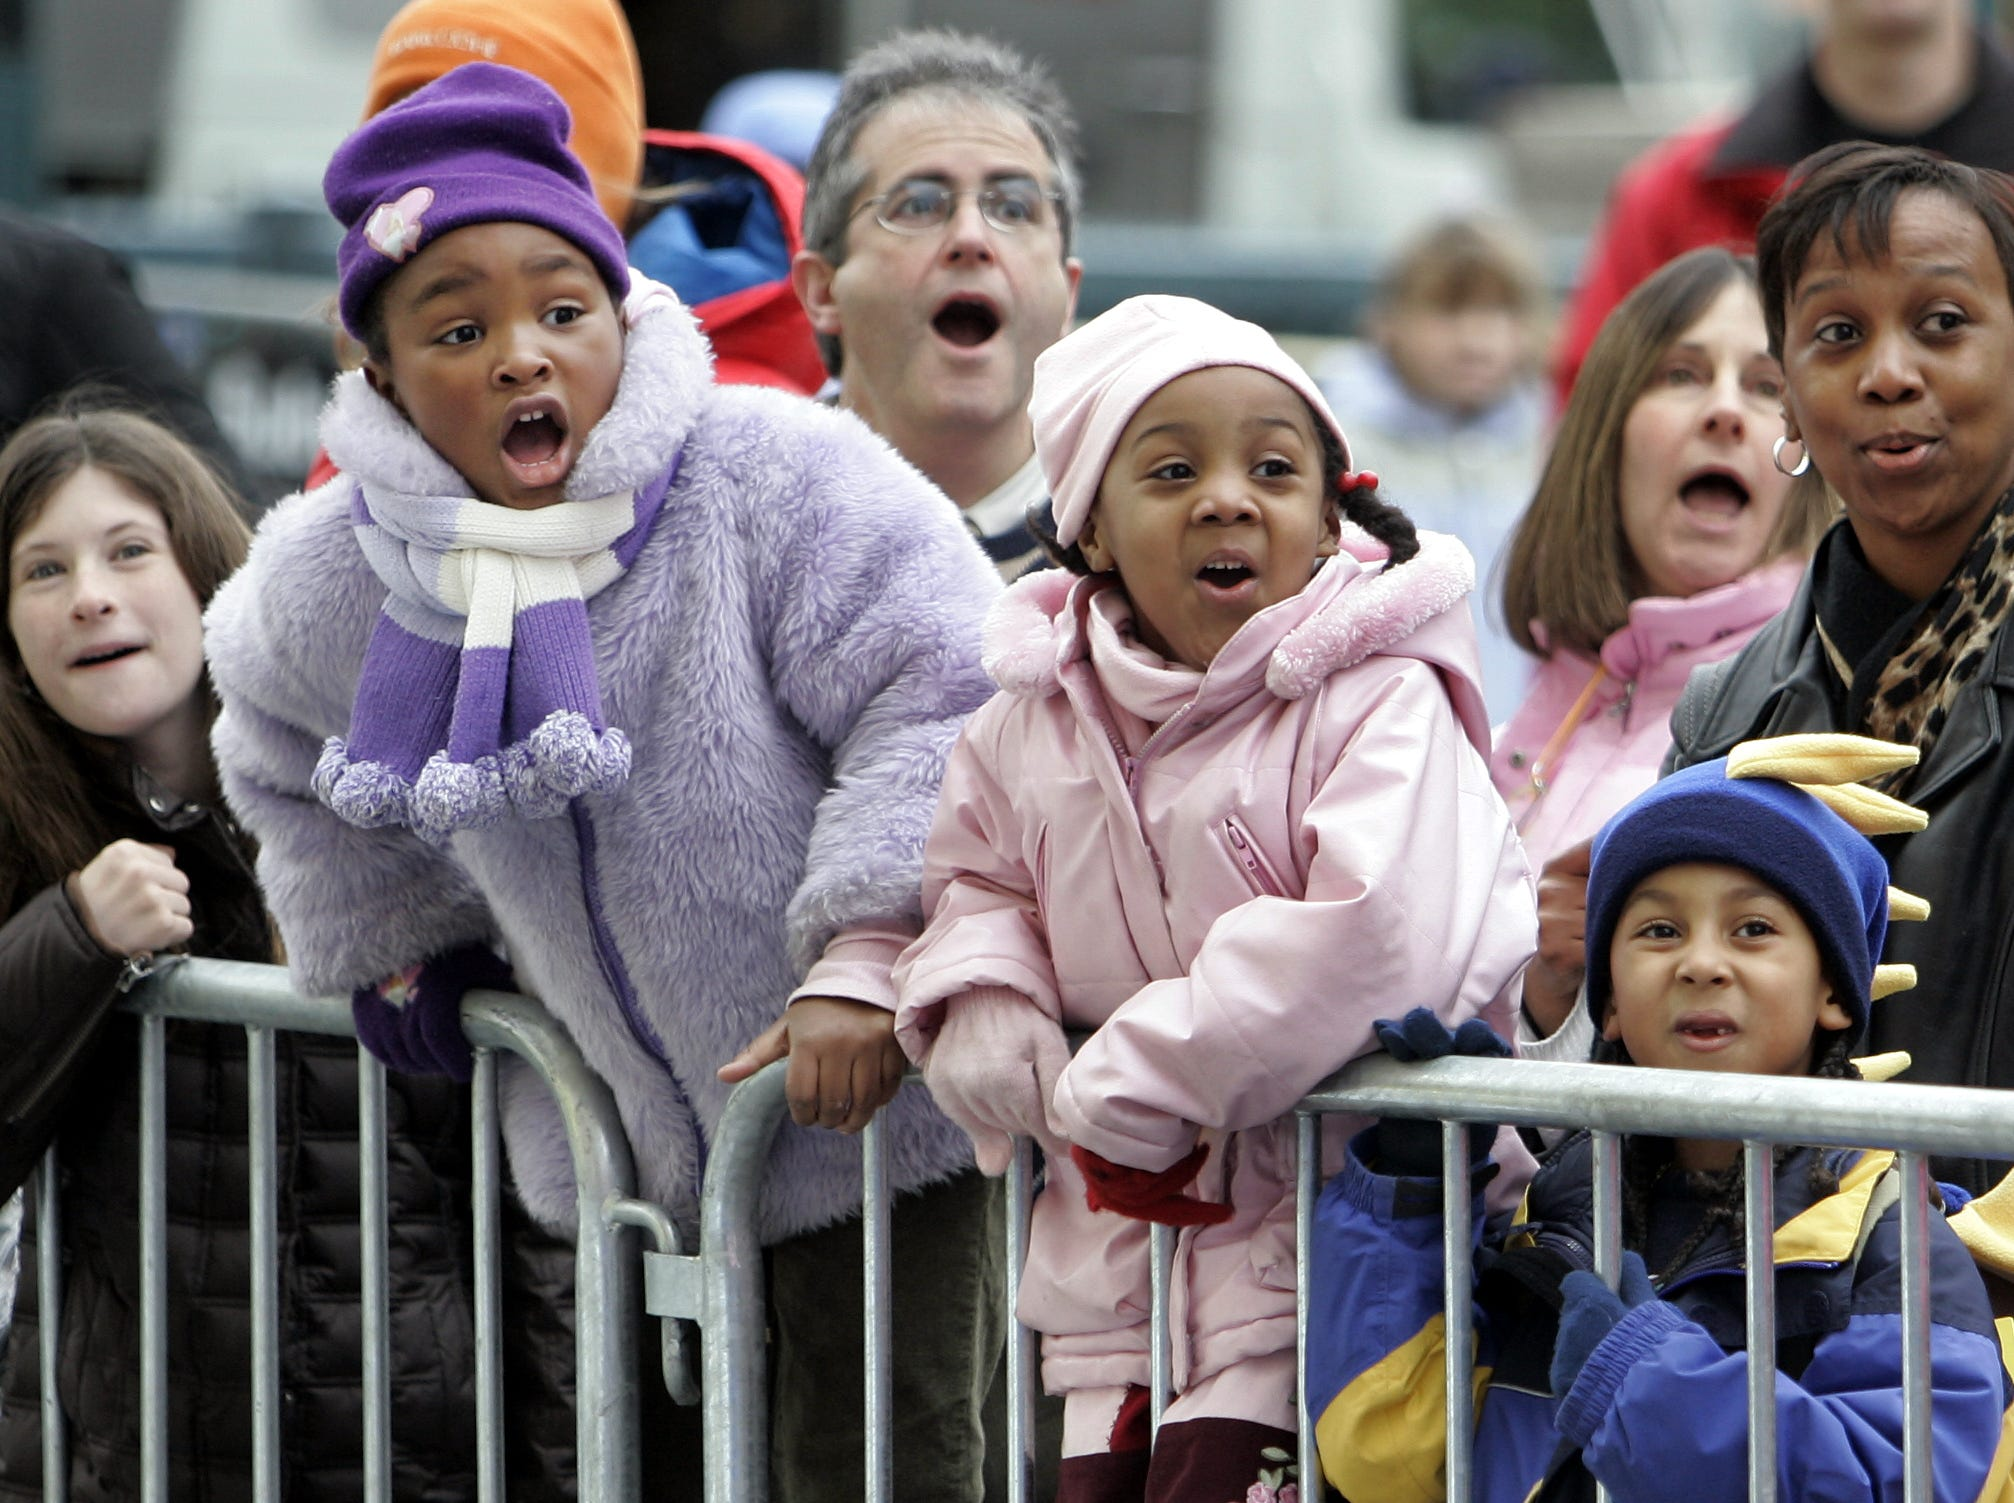 From left, Bianca Black, 6, Alicia Smith, 5, and Kevin Singleton, 5, all from New York City, watch as the Energizer Bunny is filled by  volunteer members of the Macy's inflation team on 81st street in New York City Nov. 22, 2006. (Stephen Schmitt / The Journal News)